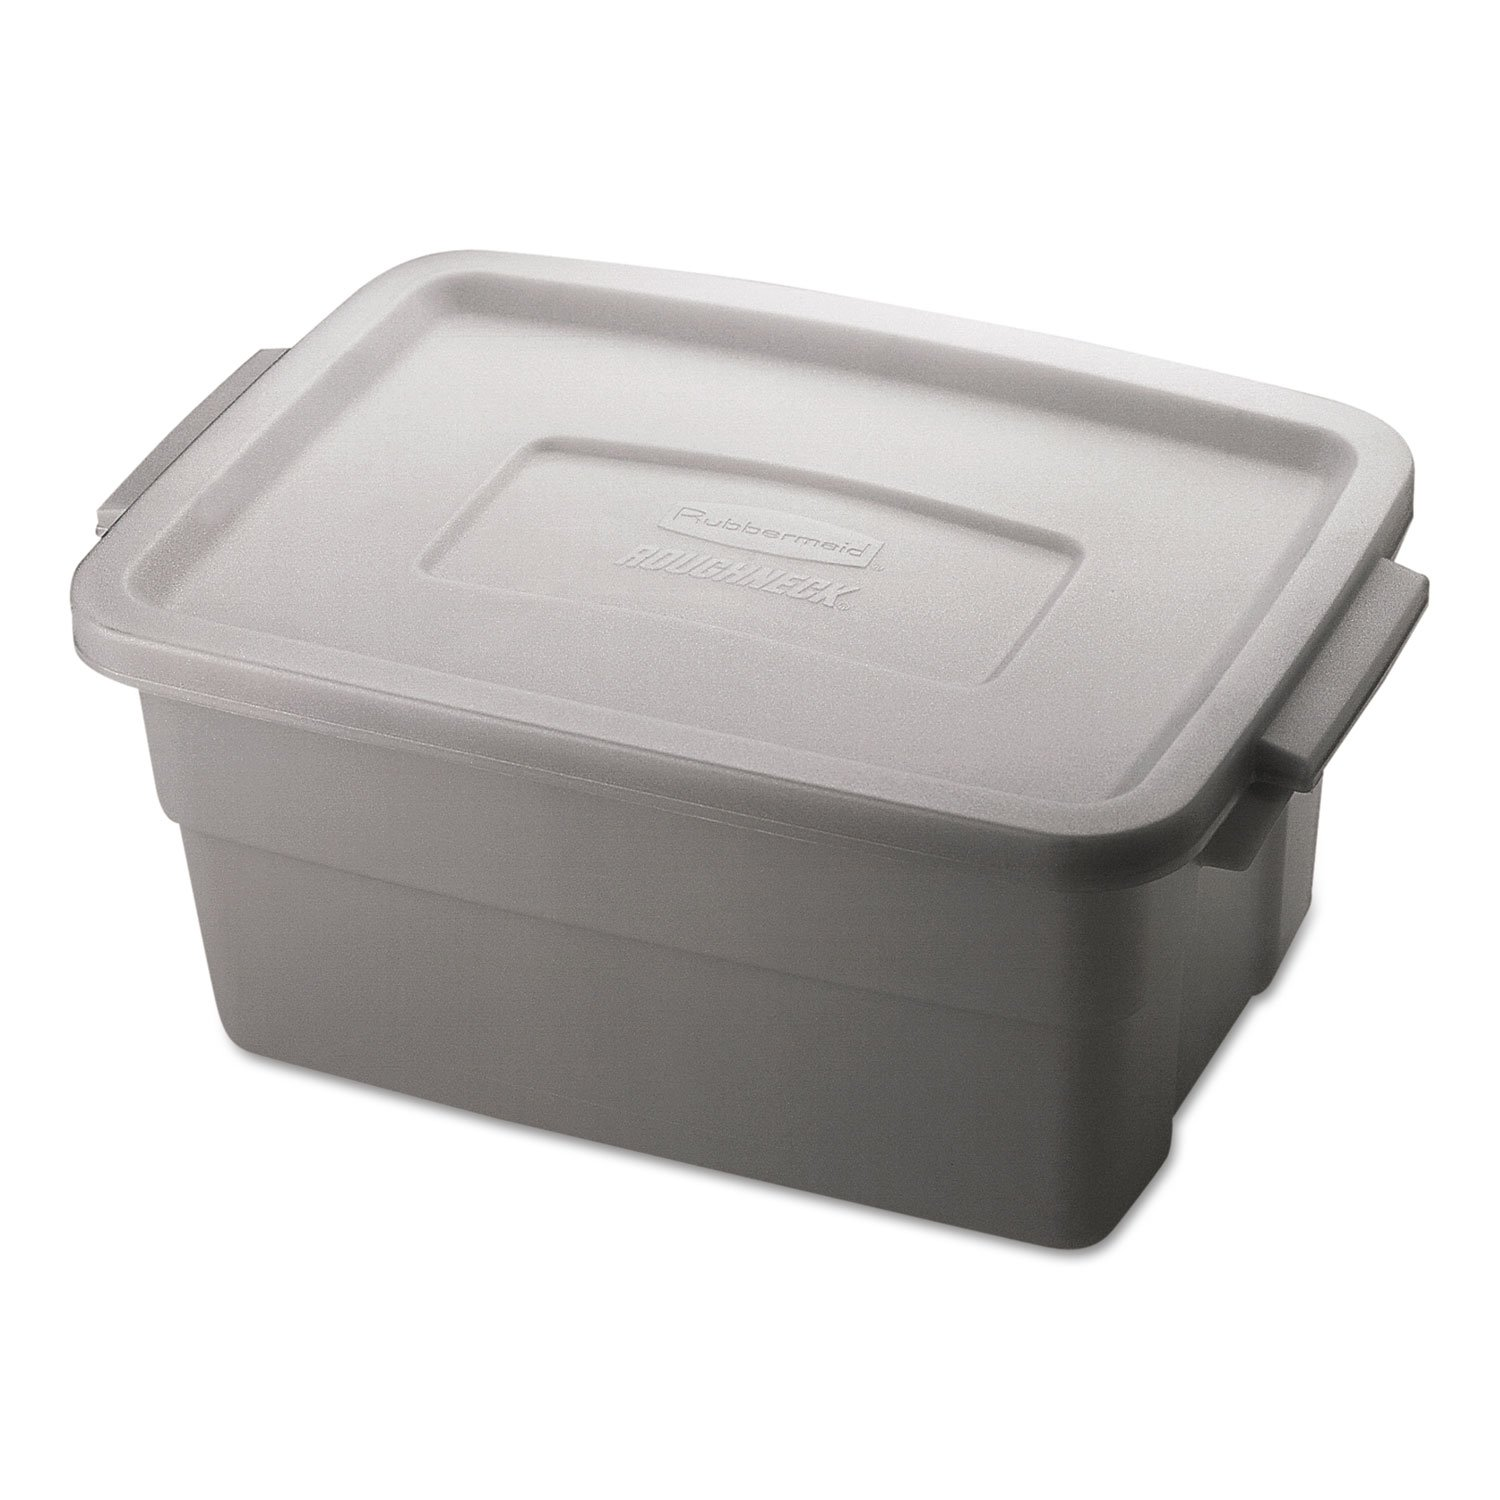 RHP2213STE - Rubbermaid Roughneck Storage Box, 3gal, Steel Gray